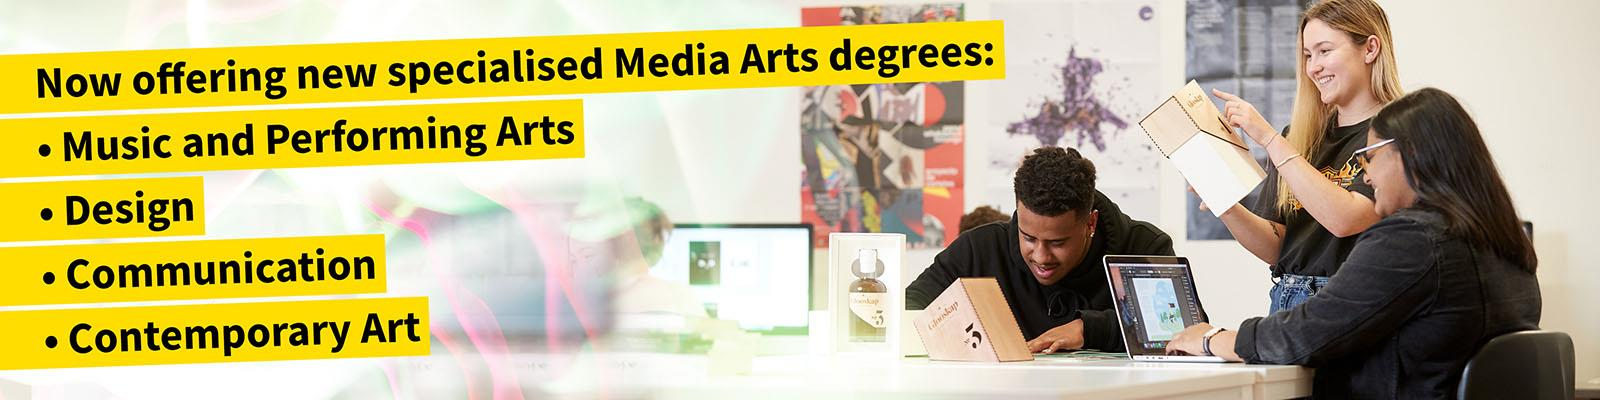 Media arts promotion of new programmes